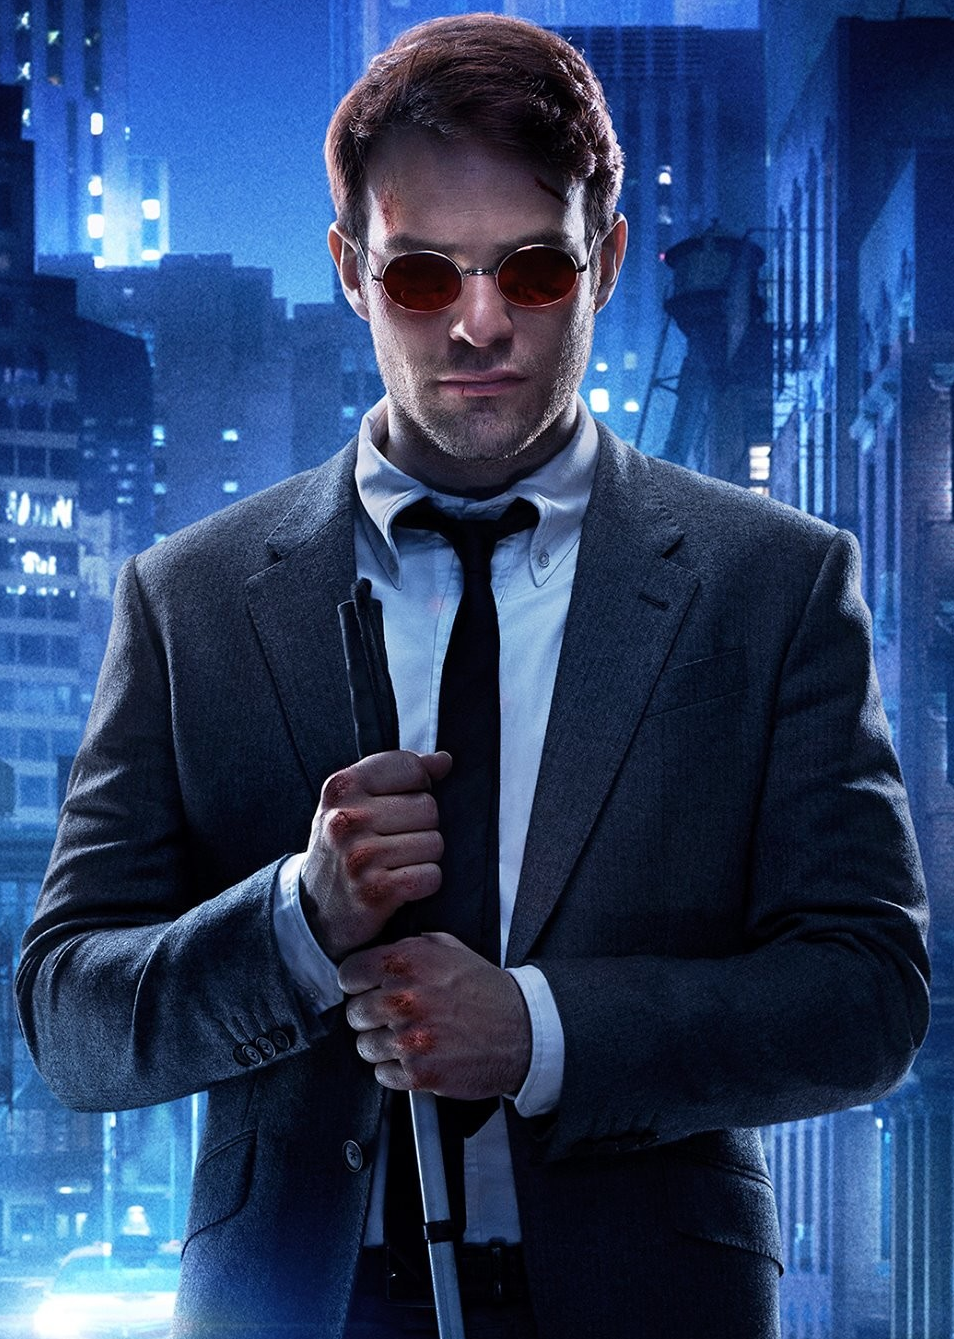 Daredevil (Marvel Cinematic Universe)